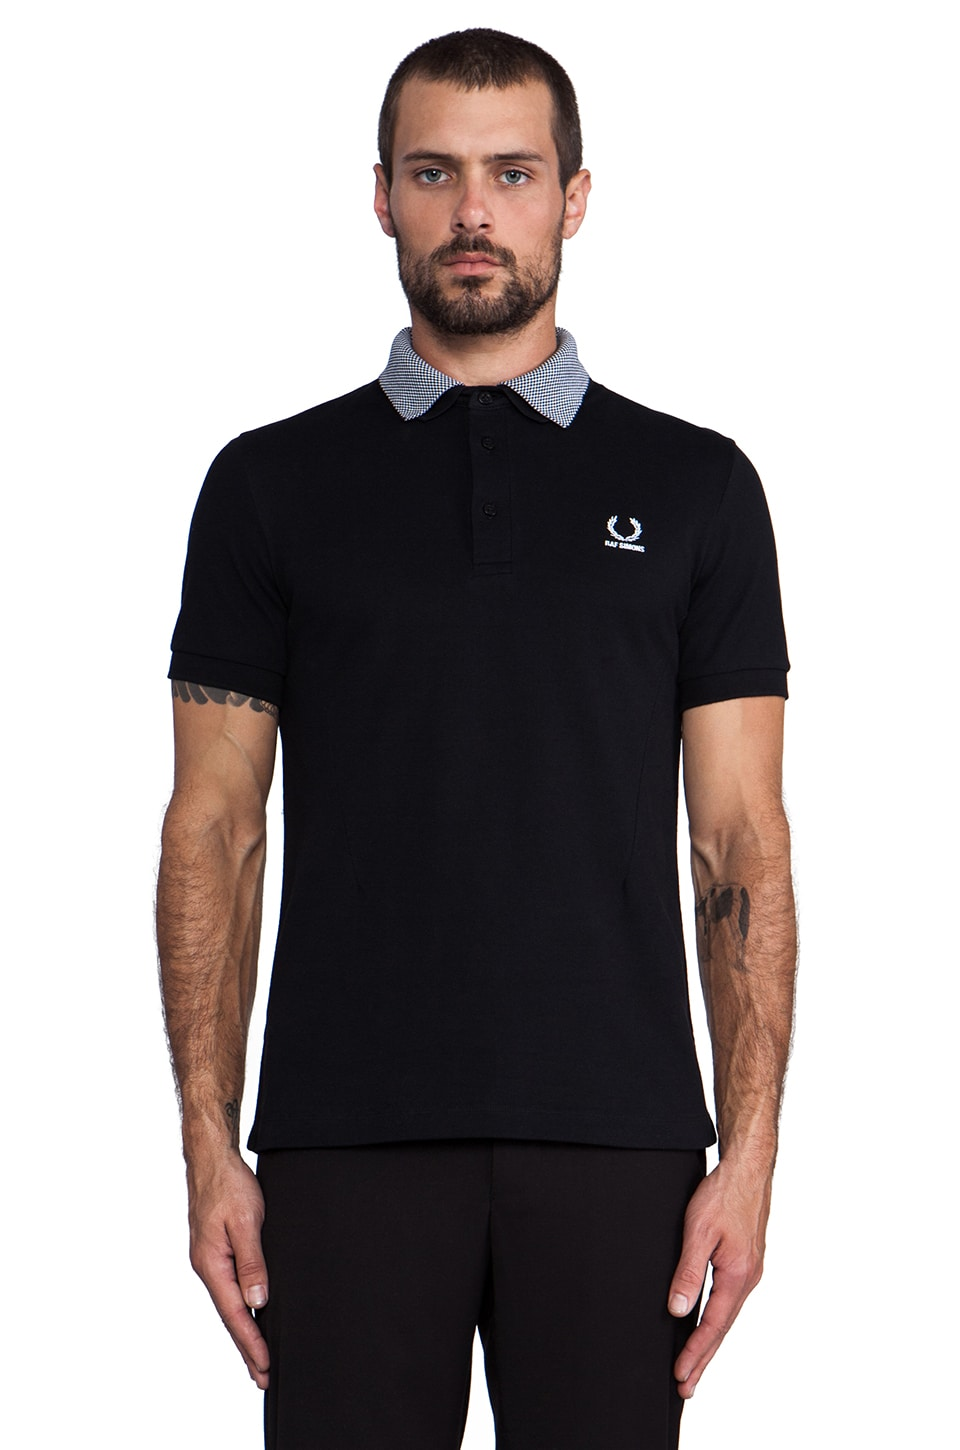 Fred Perry x Raf Simons Shirt w/ Detachable Collar in Black